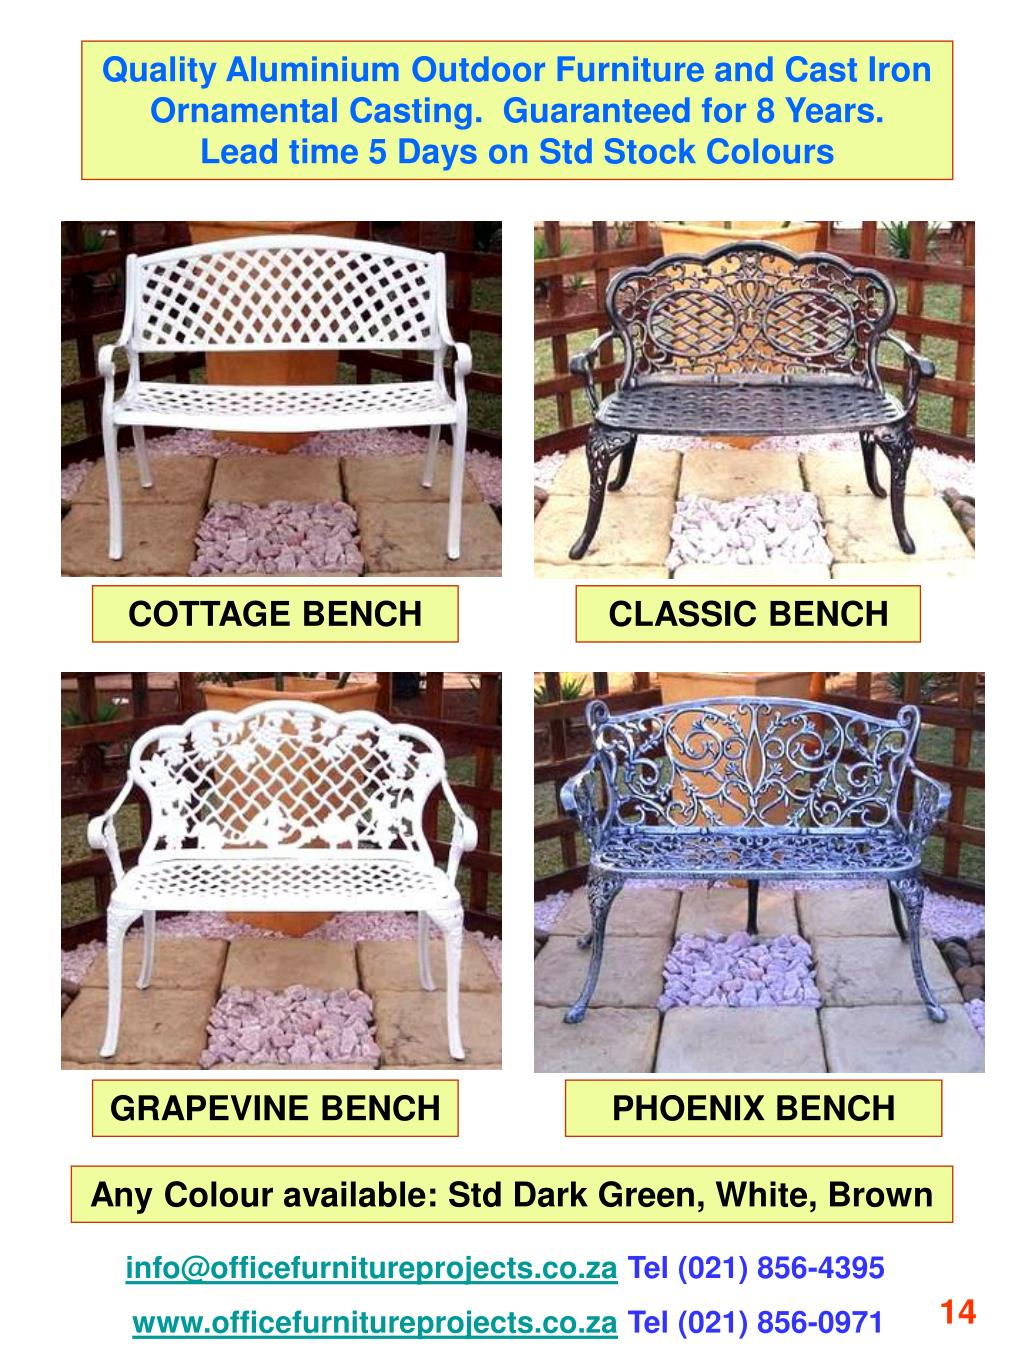 Quality Aluminium Outdoor Furniture and Cast Iron Ornamental Casting.  Guaranteed for 8 Years.        Lead time 5 Days on Std Stock Colours